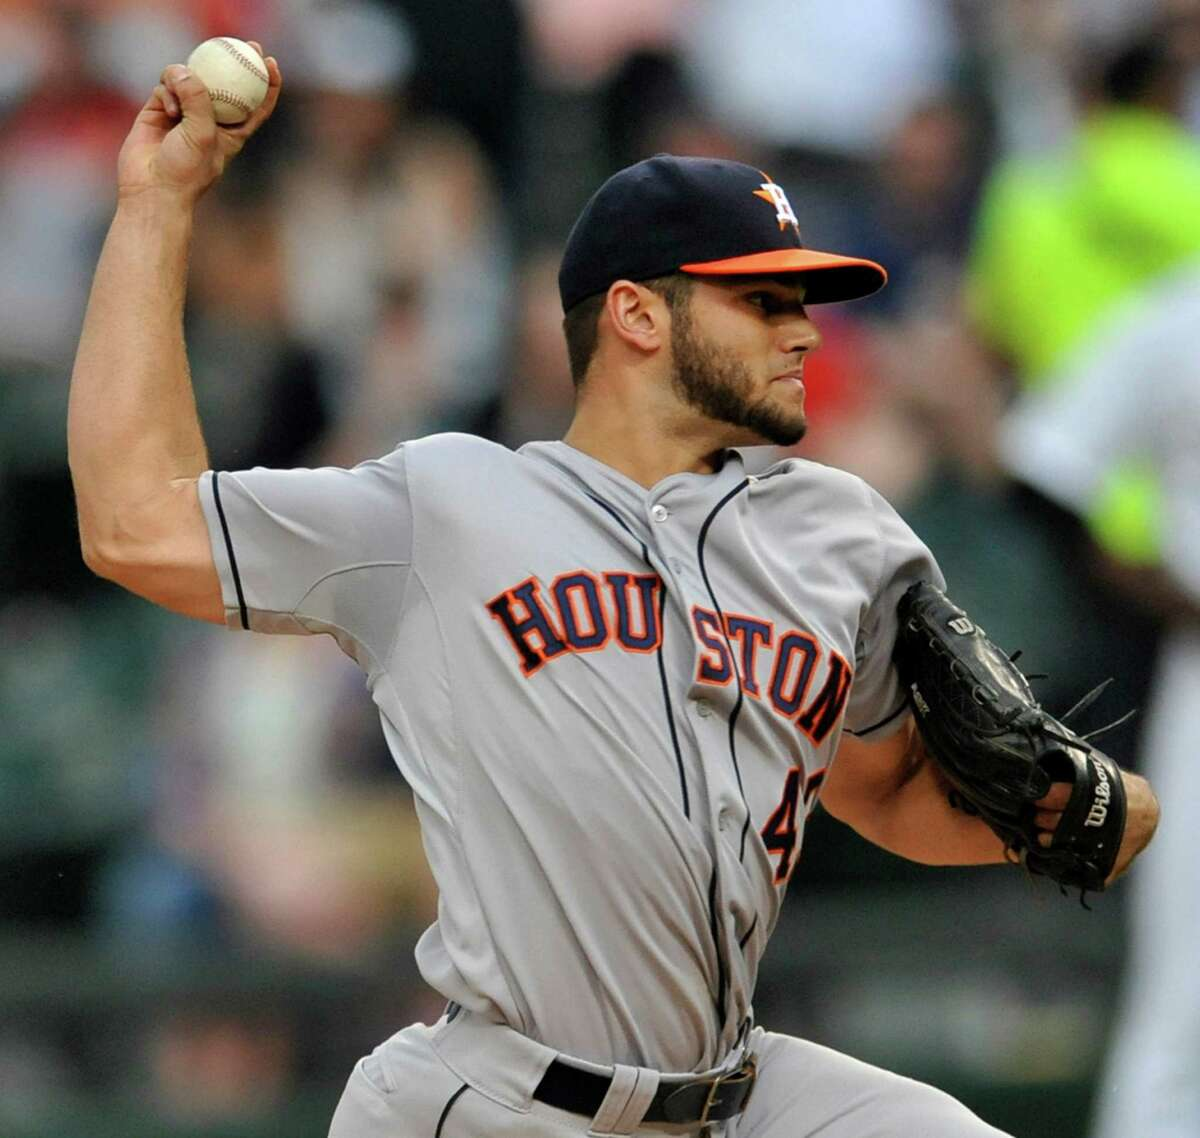 Houston Astros starter Lance McCullers delivers a pitch during the first inning of a baseball game against the Chicago White Sox Monday, June 8, 2015 in Chicago. (AP Photo/Paul Beaty)